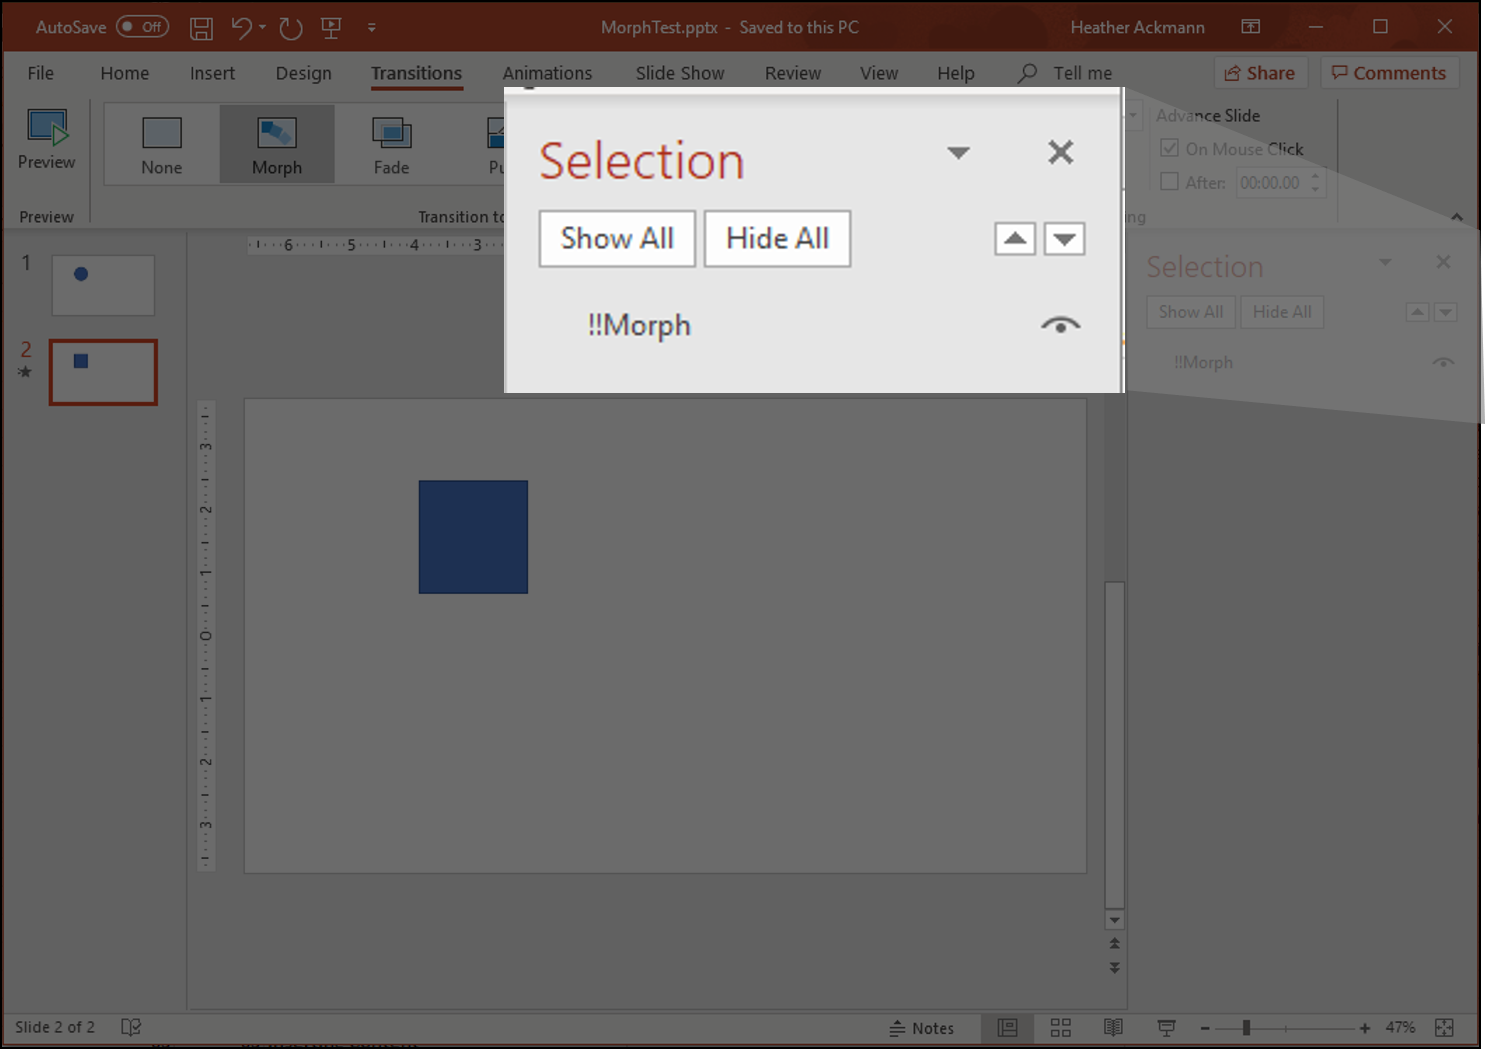 Selection Pane shown with text !!Morph applied to the selected shape on the slide